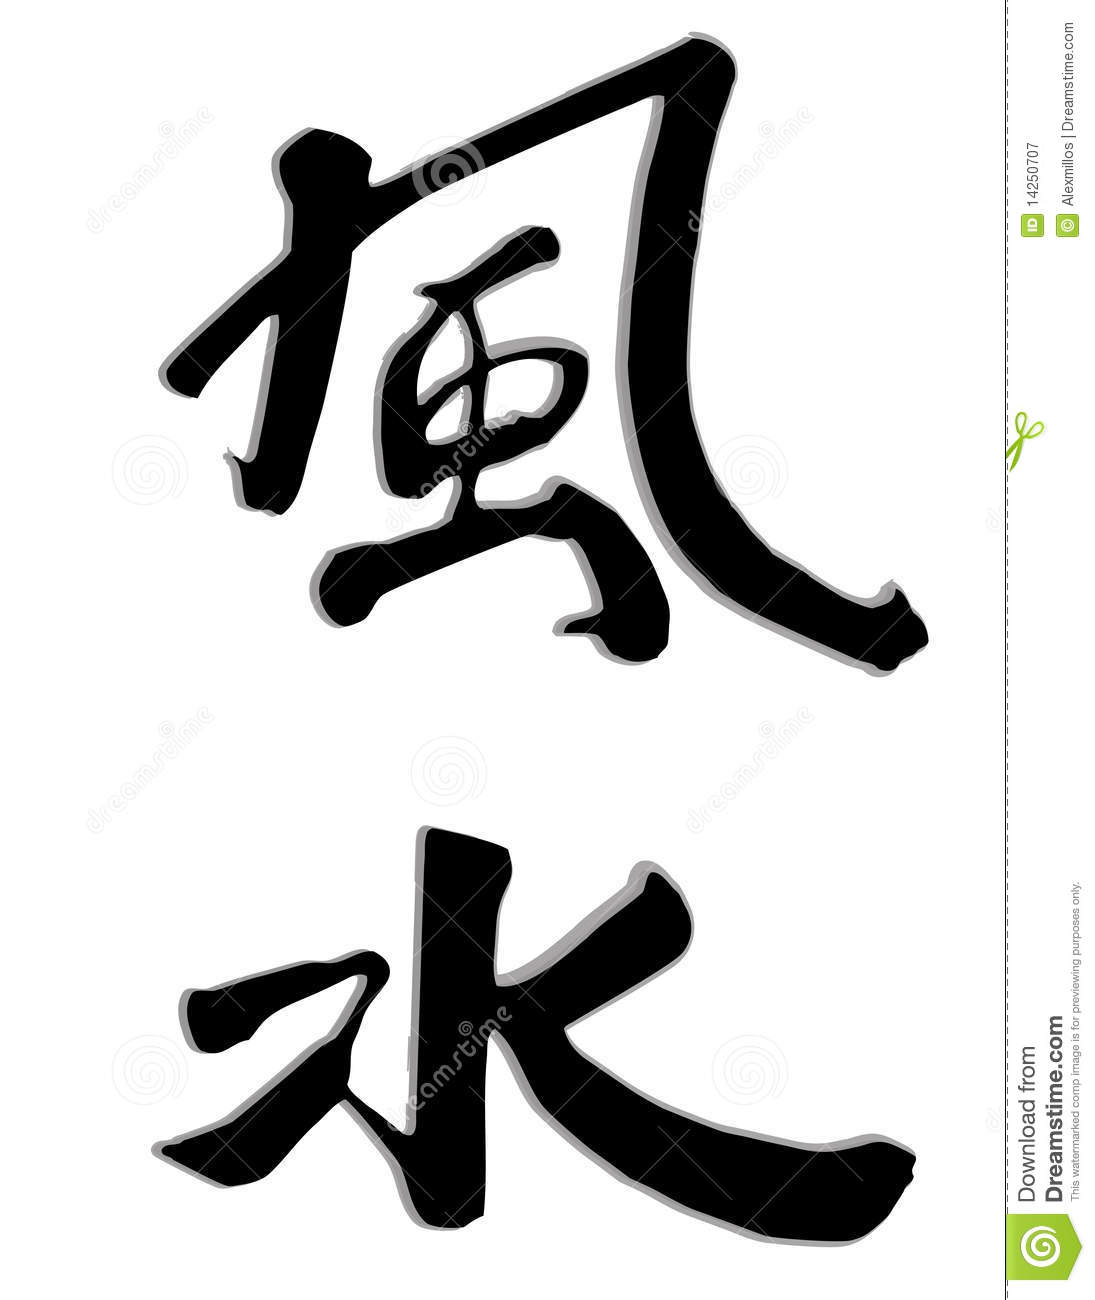 Feng shui vector royalty free stock photography image - Feng shui chinese symbols ...